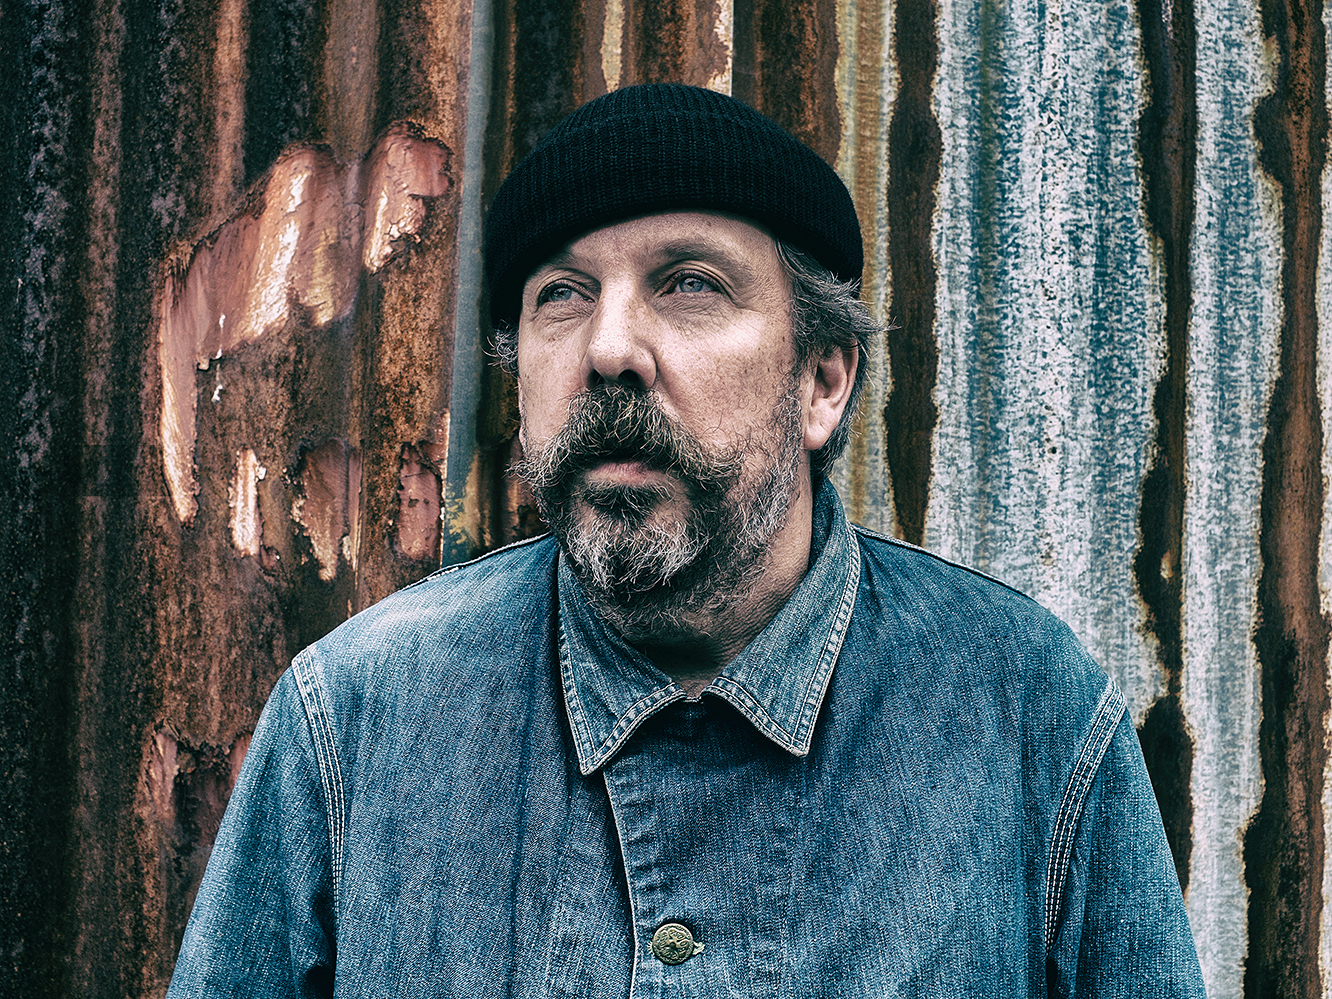 Andrew Weatherall, Champion Of Underground Music, Dies At 56